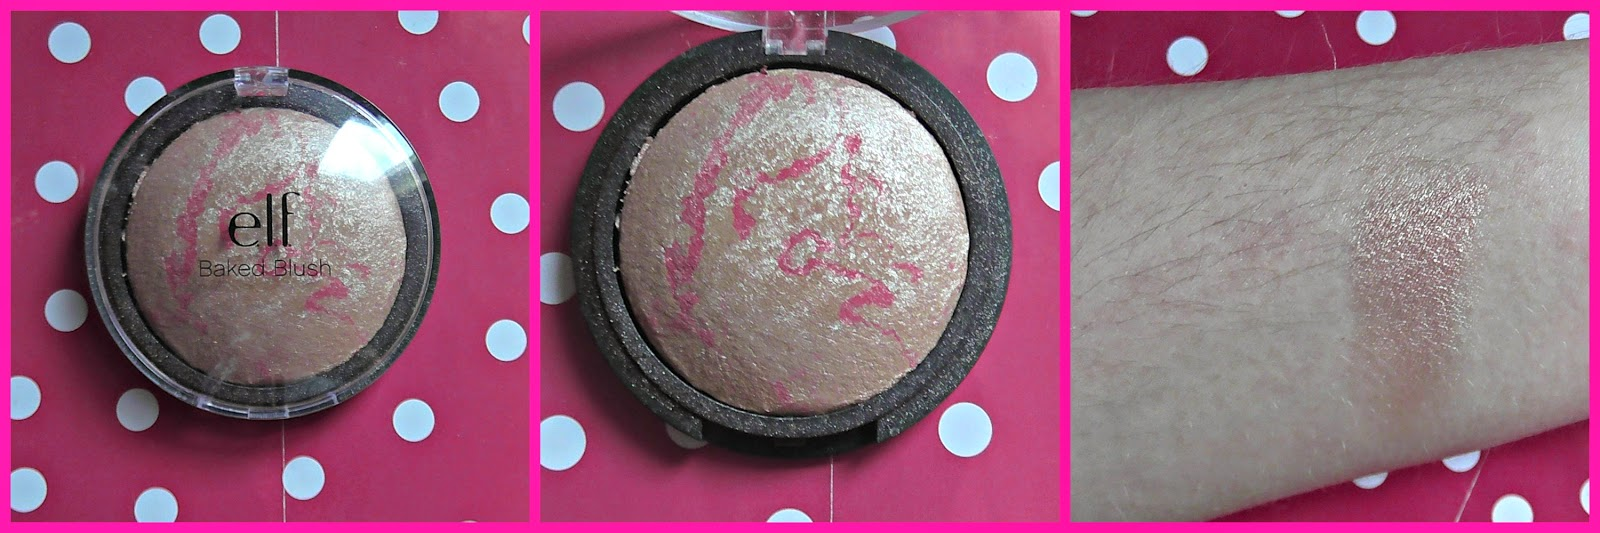 ELF Baked Blush in Pinktastic